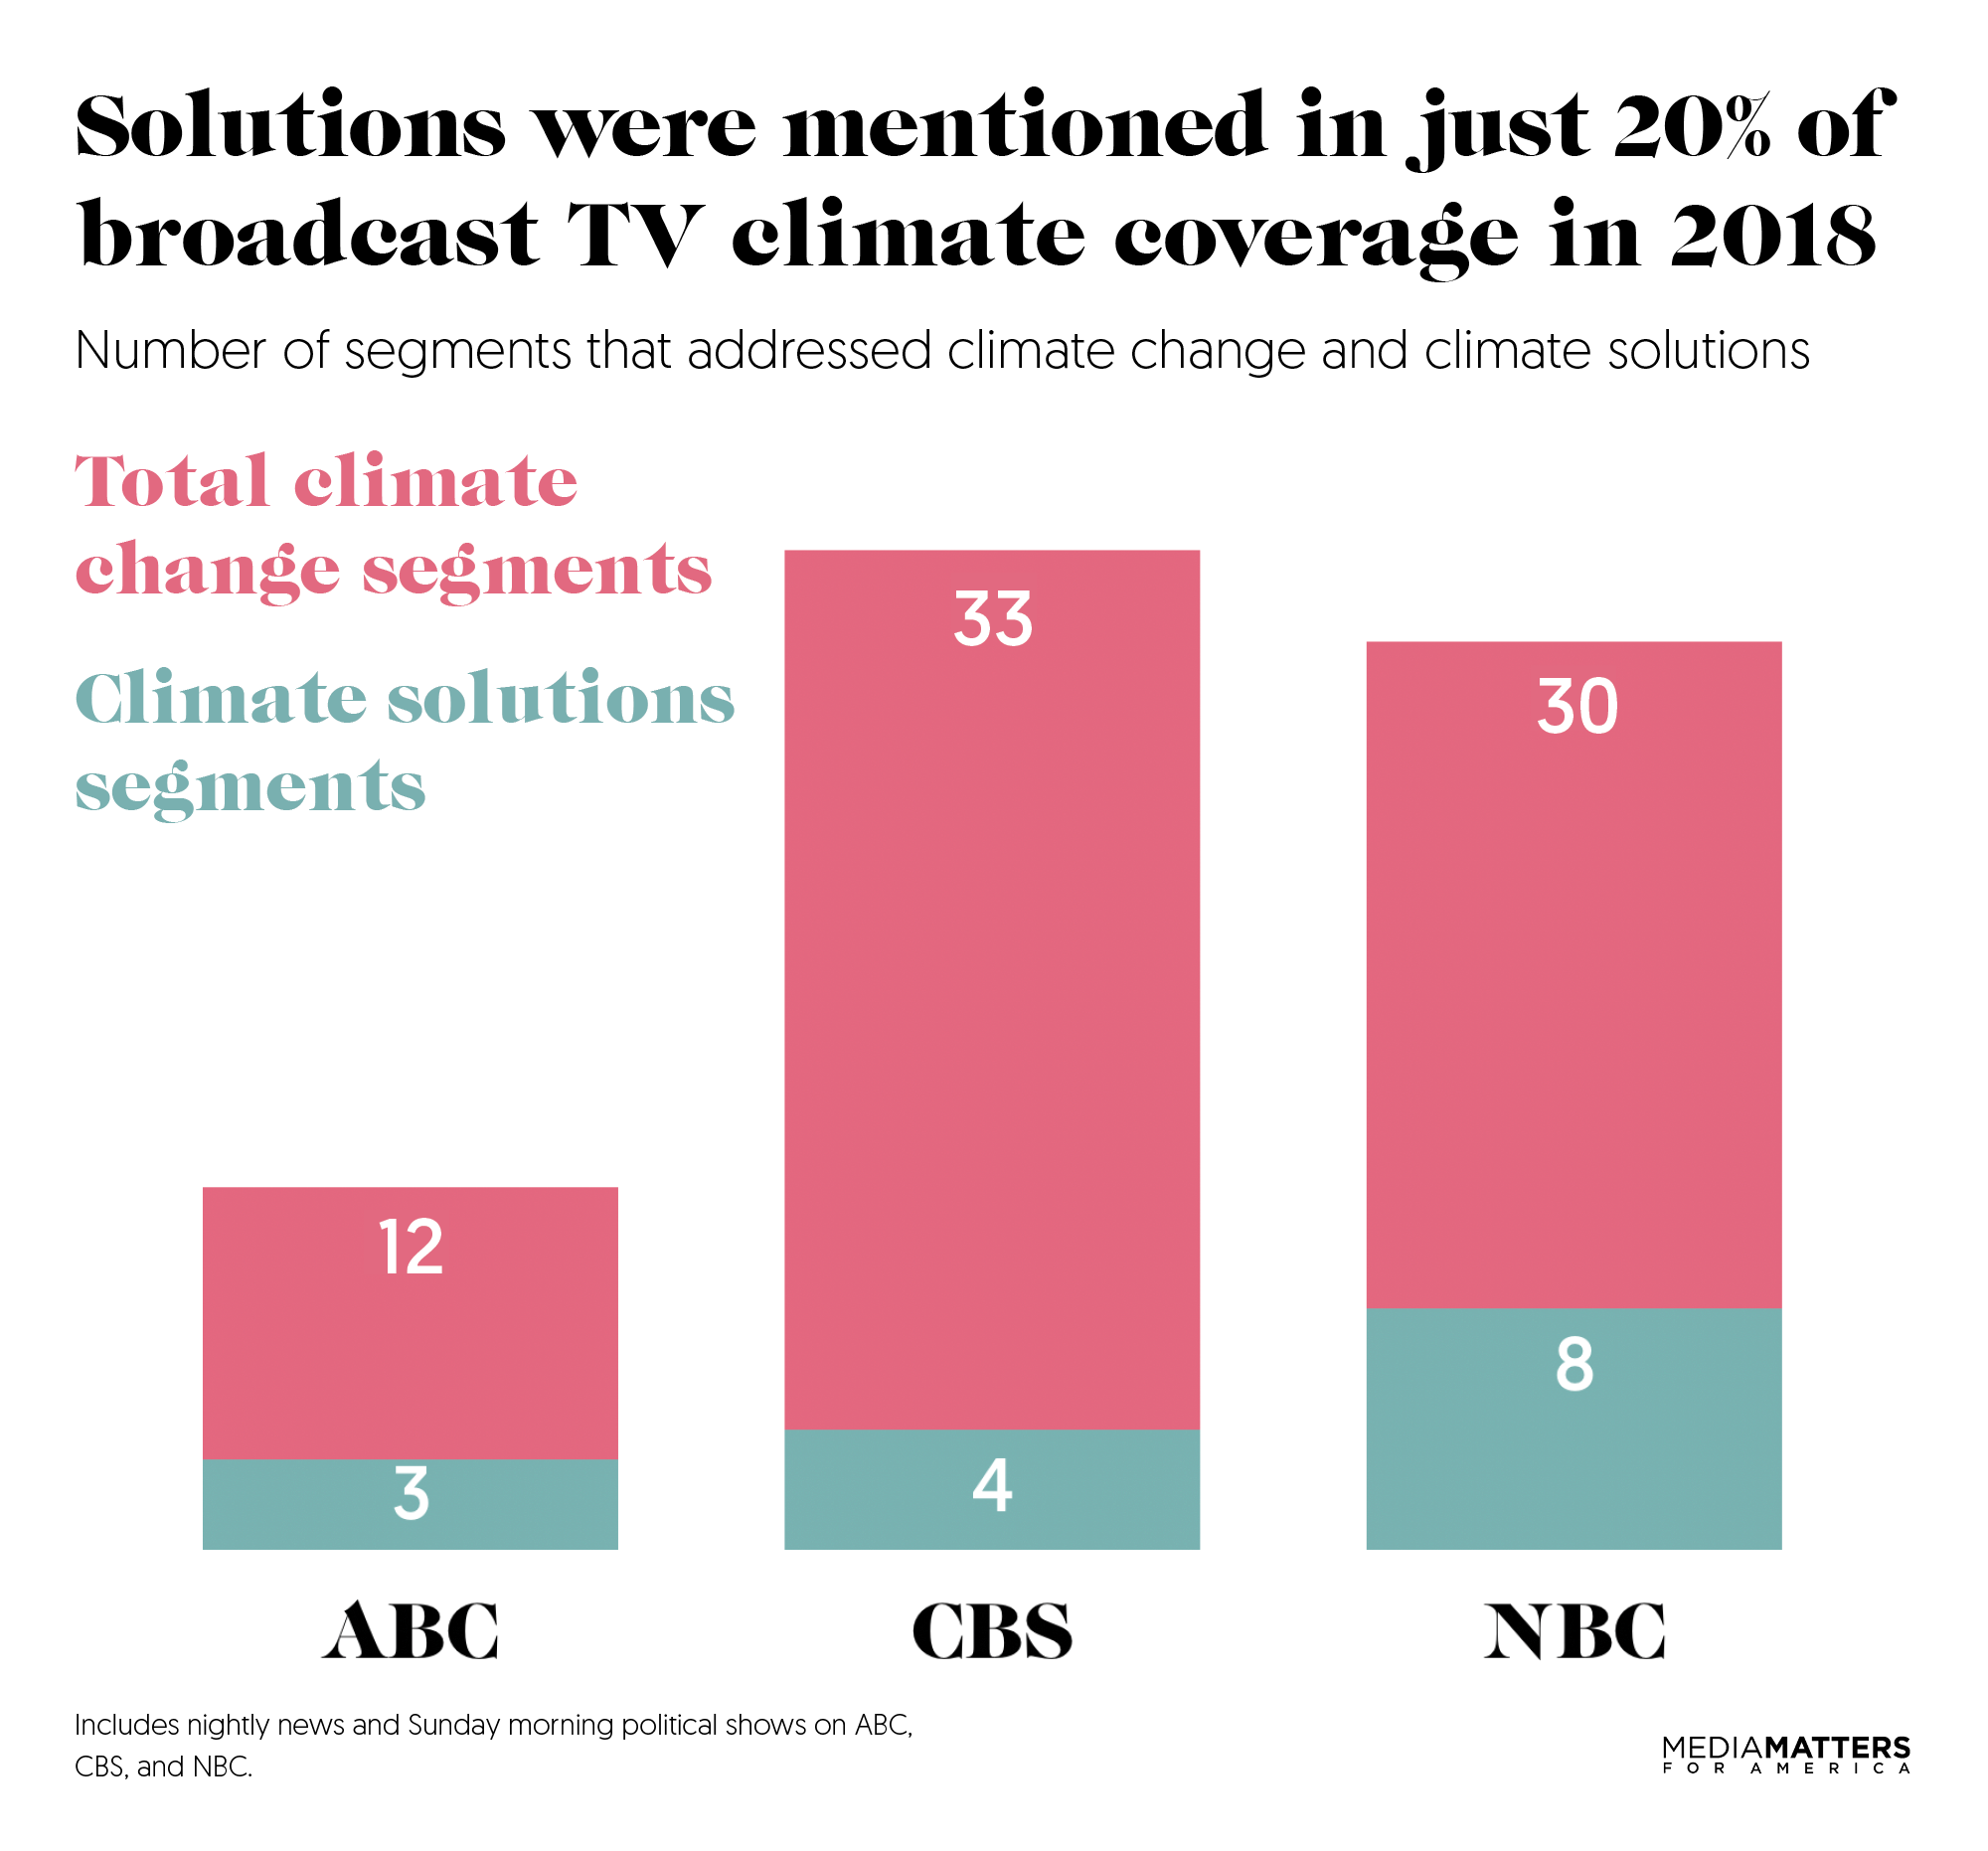 How broadcast TV networks covered climate change in 2018